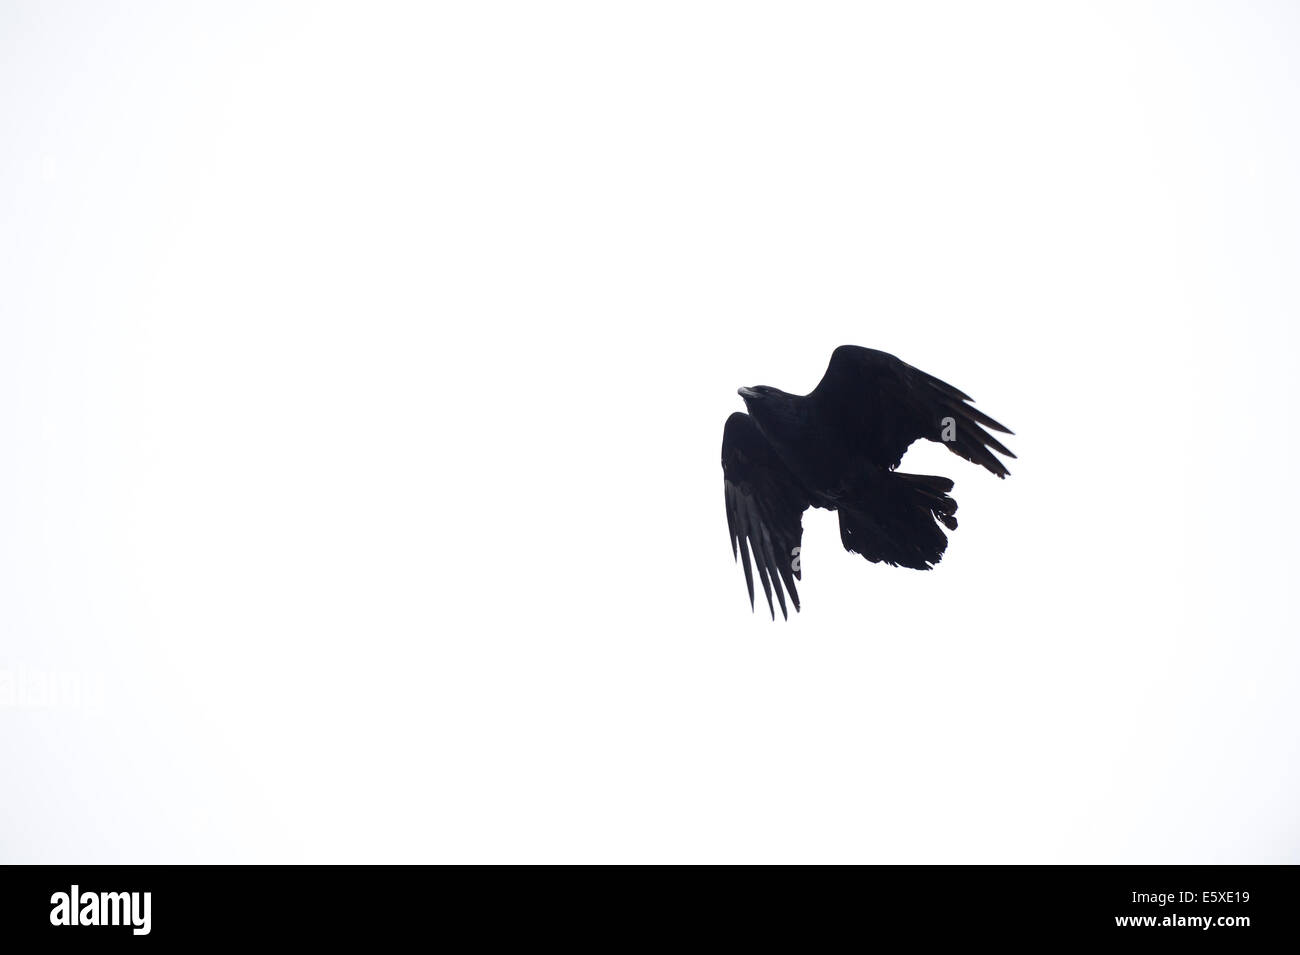 A raven in the Alaska Wildlife Conservation Center, Girdwood, Alaska. - Stock Image